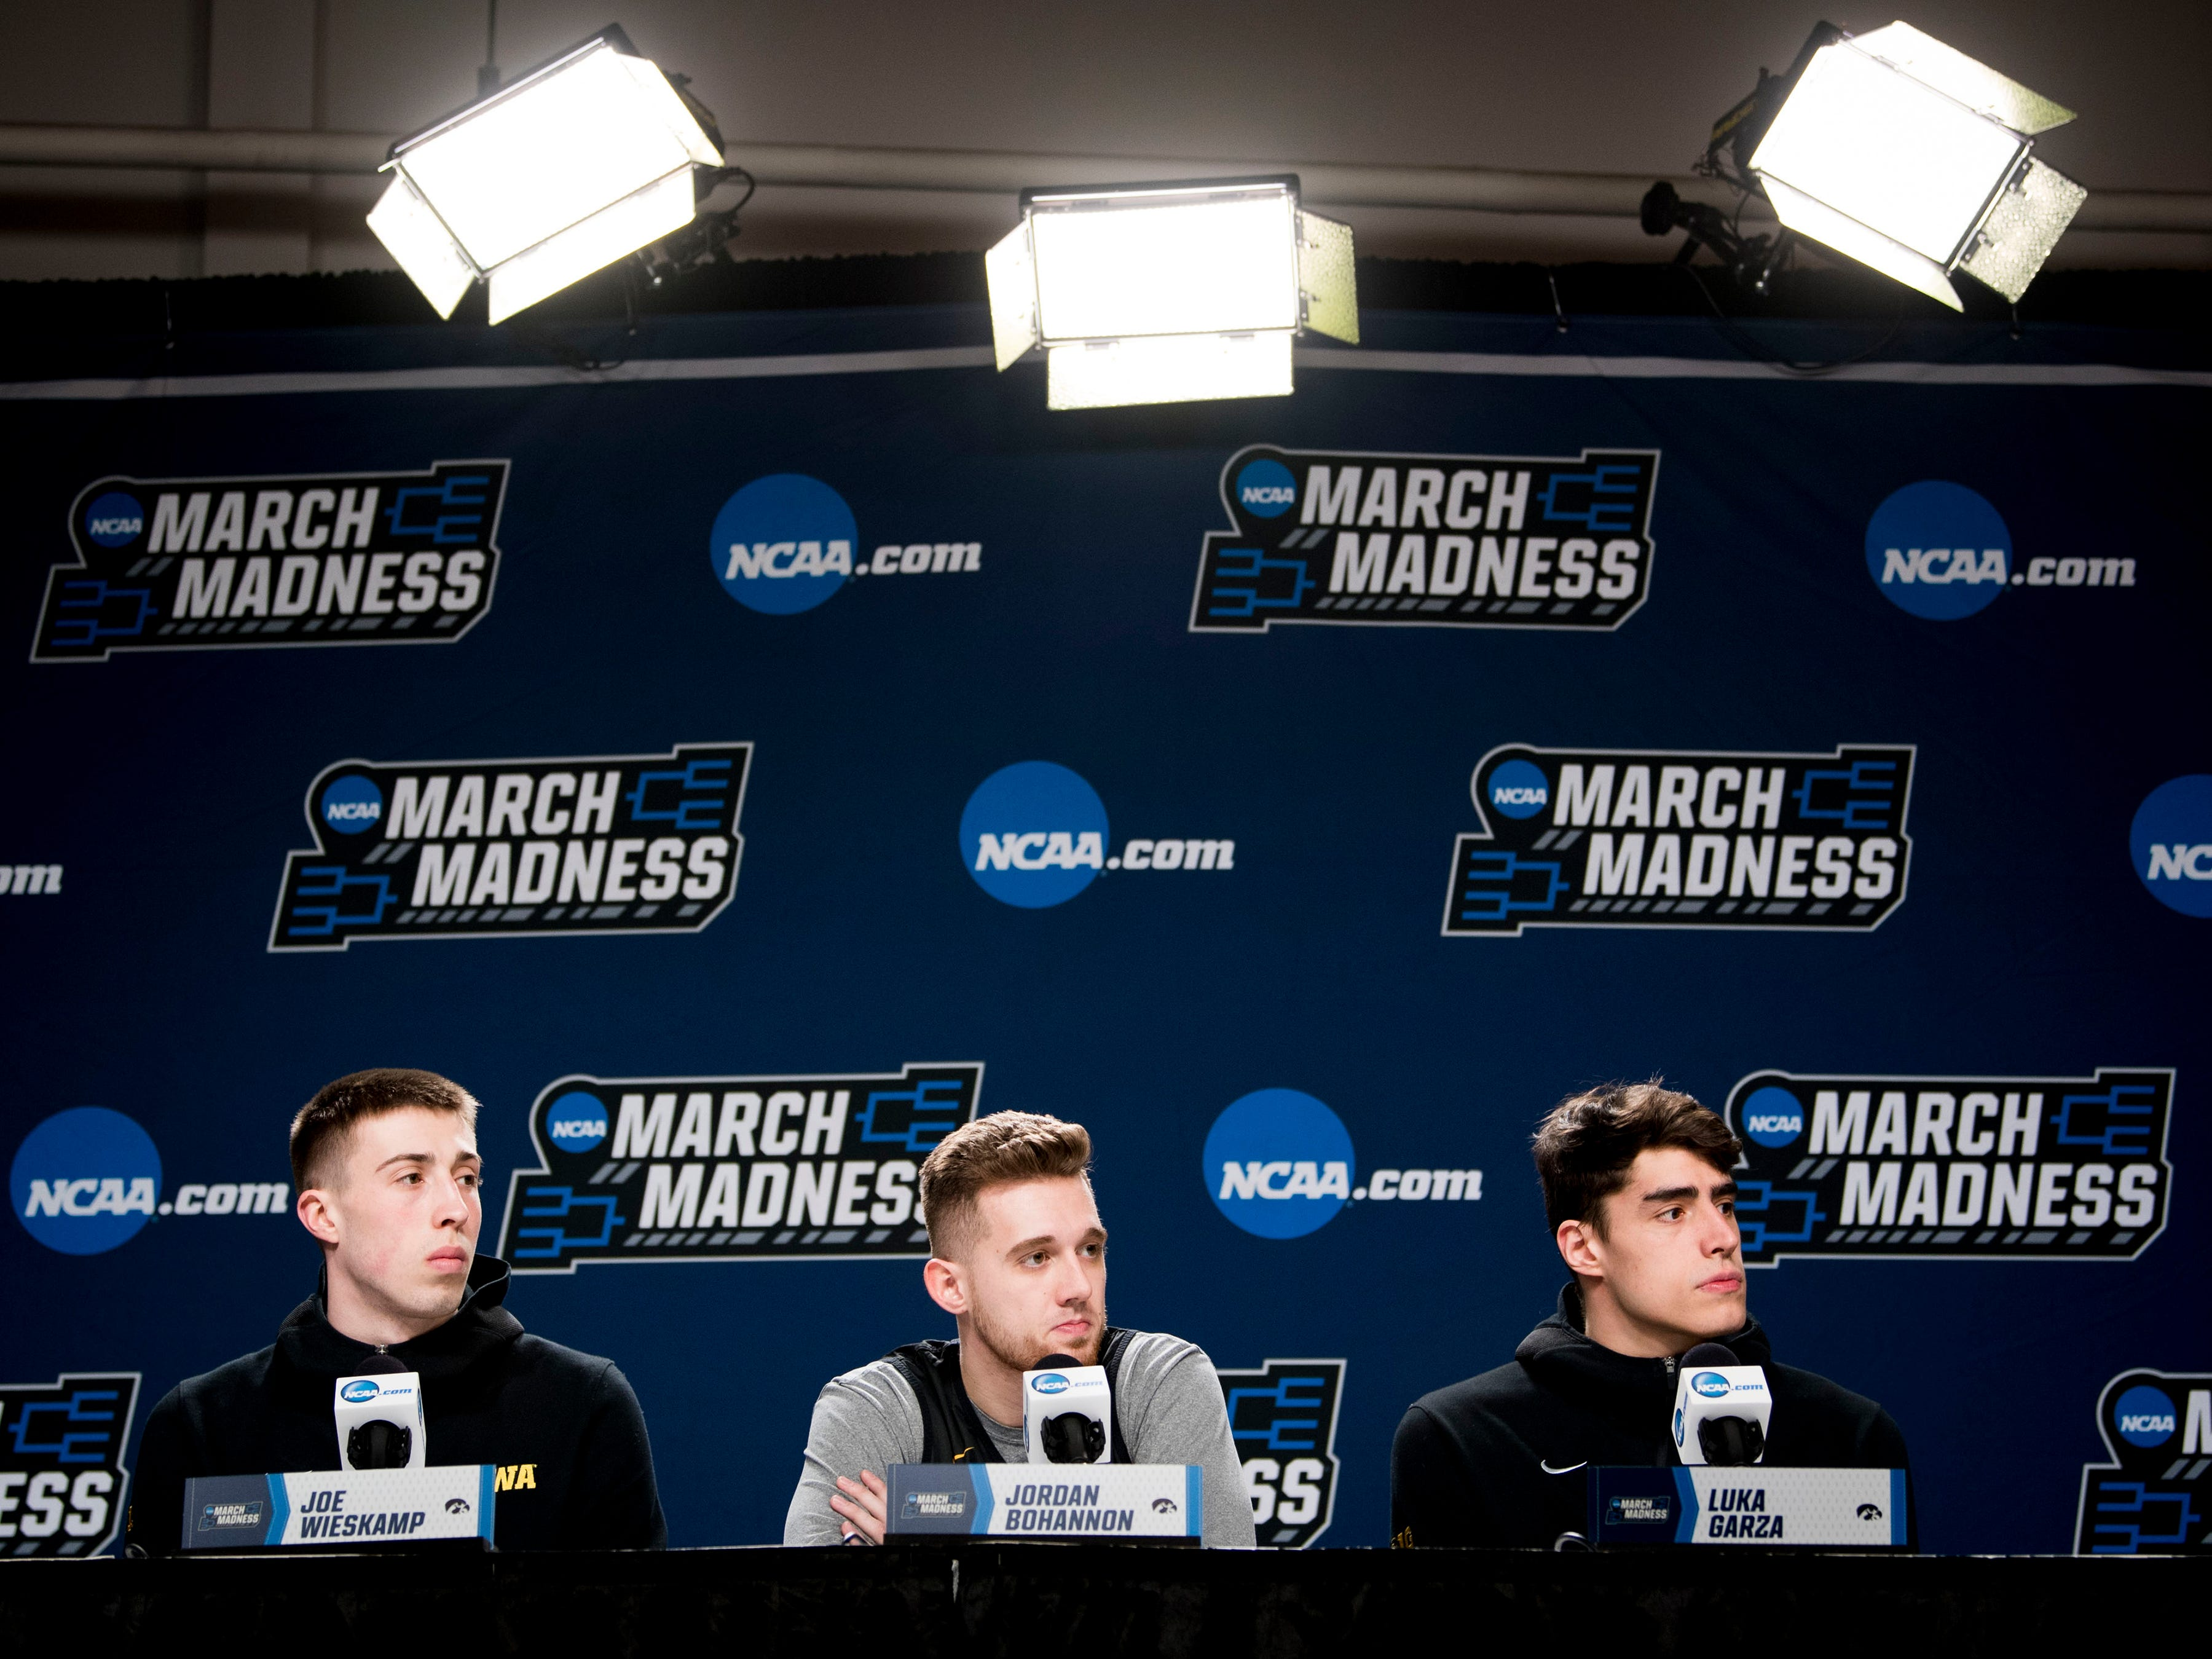 From left, Iowa's Joe Wieskamp, Jordan Bohannon and Luka Garza speak at a press conference on Saturday, March 23, 2019, before the Tennessee Volunteers and Iowa Hawkeyes compete against one another in the second round of the NCAA Tournament held at Nationwide Arena in Columbus, Ohio on Sunday, March 24, 2019.